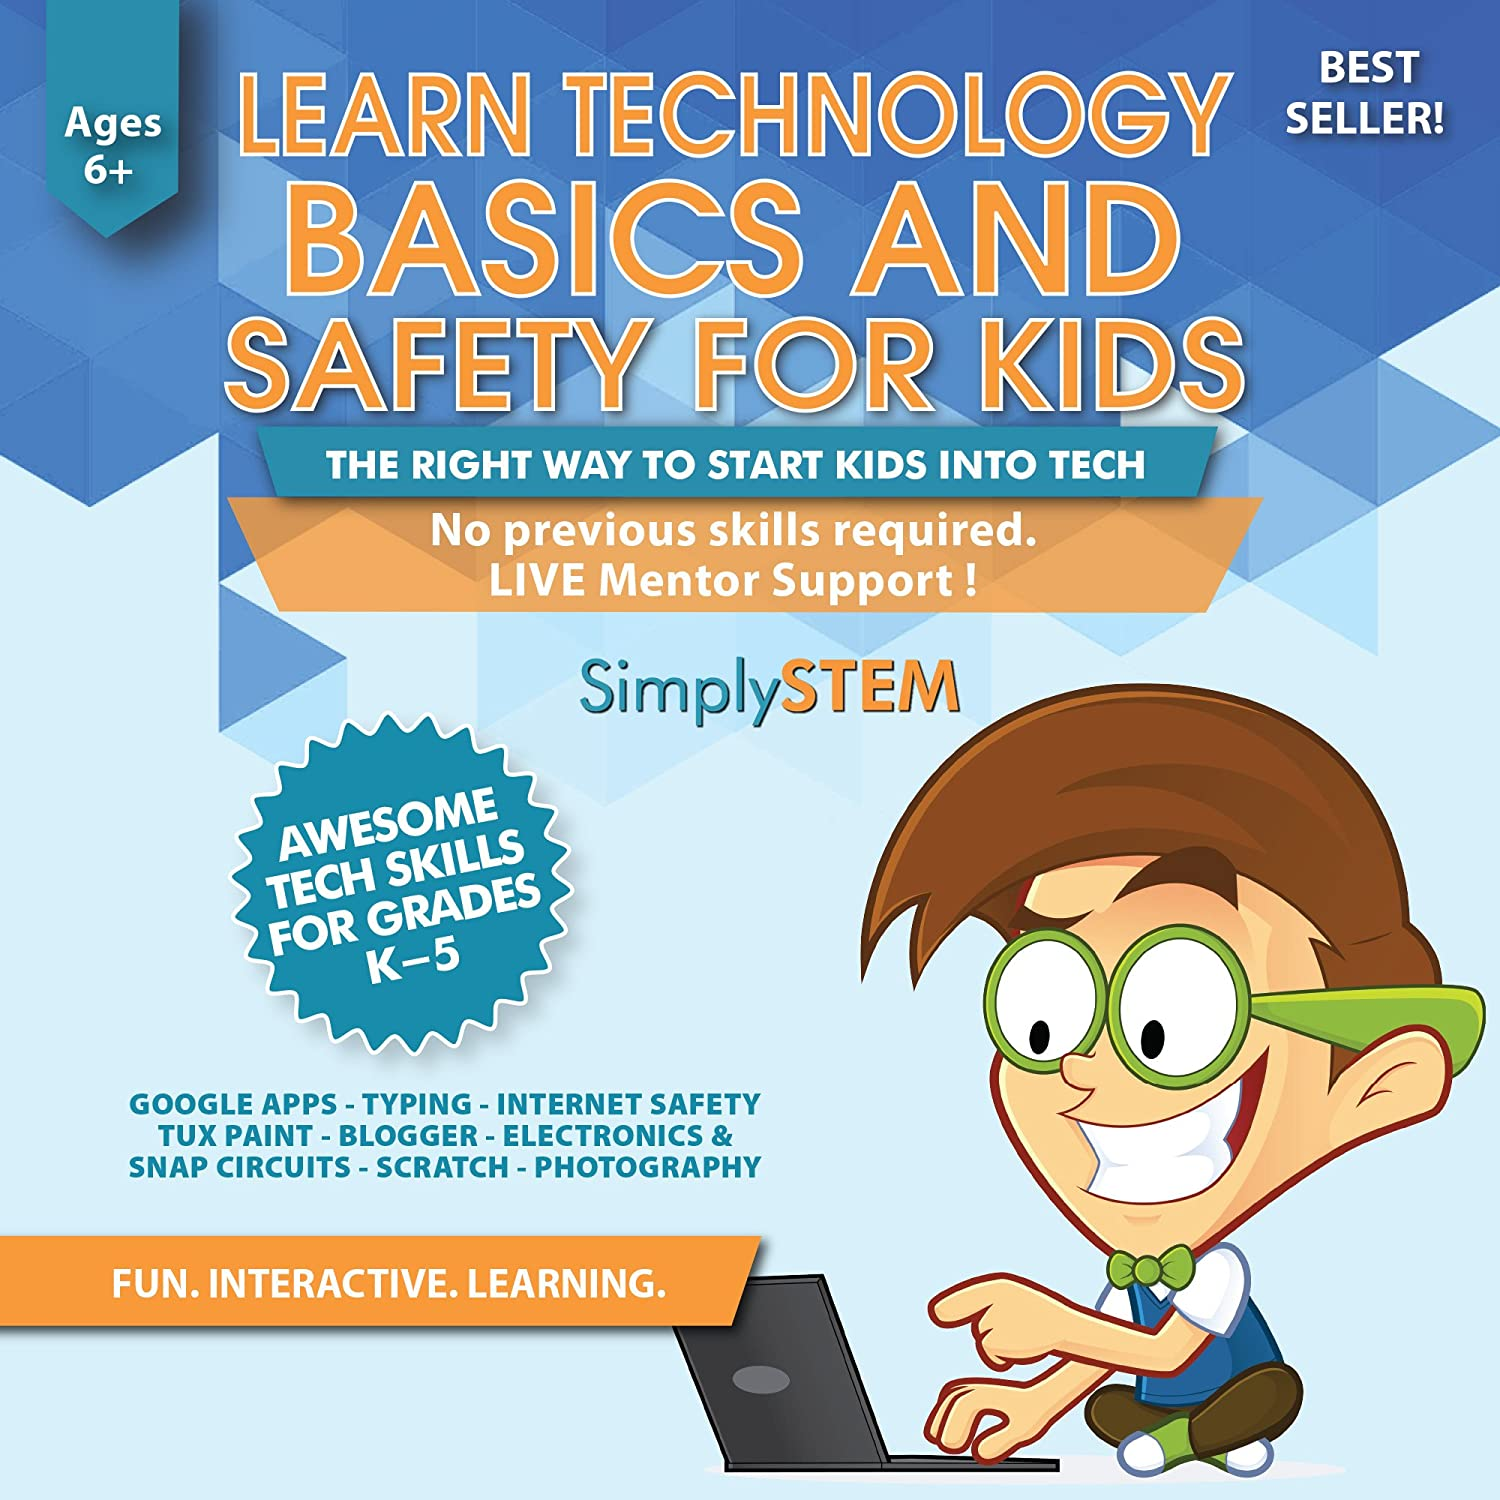 Learn Electronic Snap Circuits Coding Games In Scratch The Circuit Extra Large Movie Poster Image Imp Awards Google Apps Keyboarding For Kids Ages 6 Stem Technology Basics Internet Safety